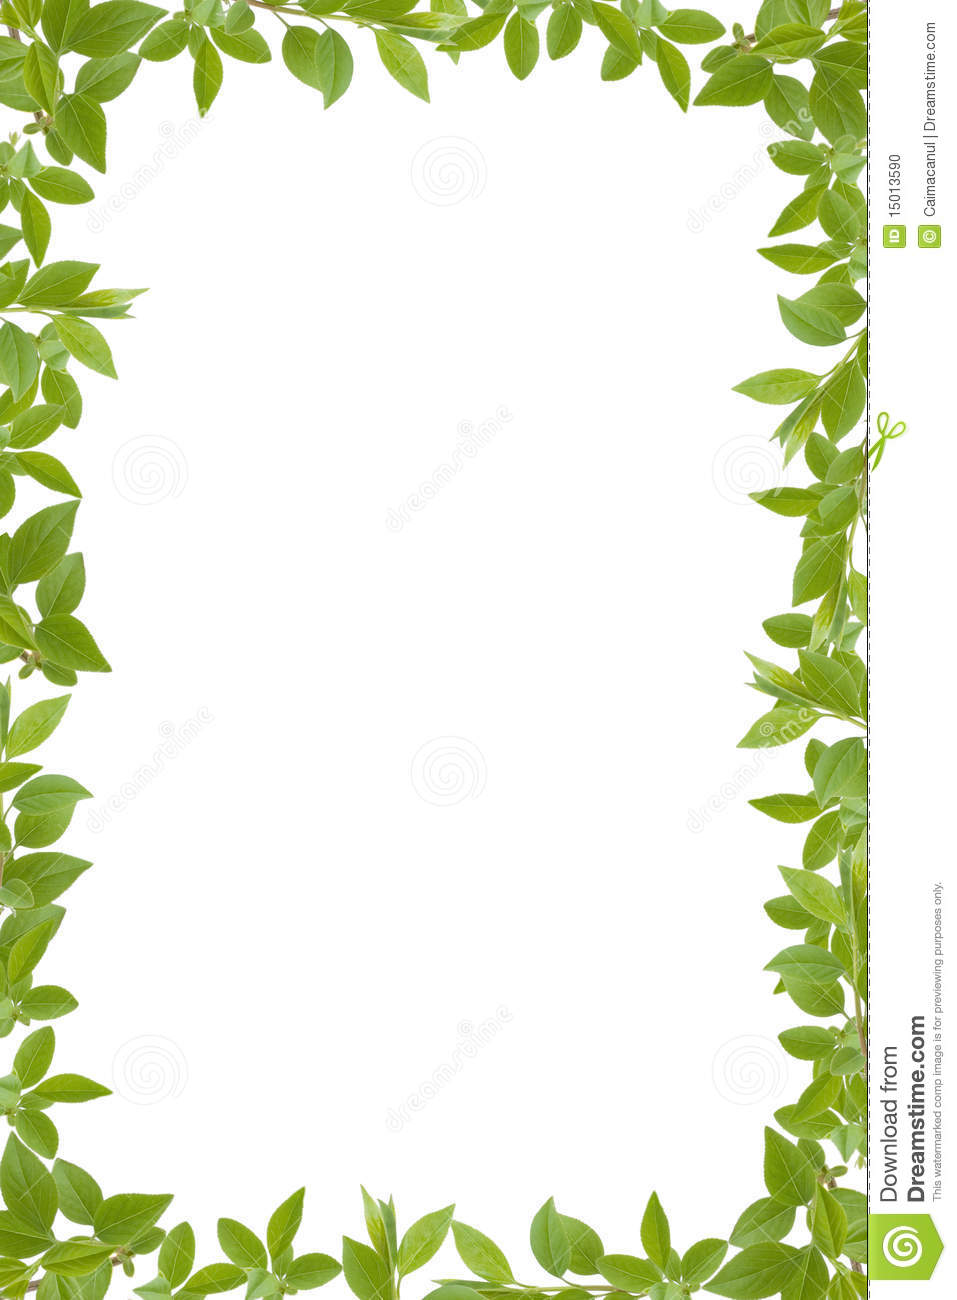 green leaves frame stock photo image 15013590 green leaf border clip art watercolor green leaf clip art free download